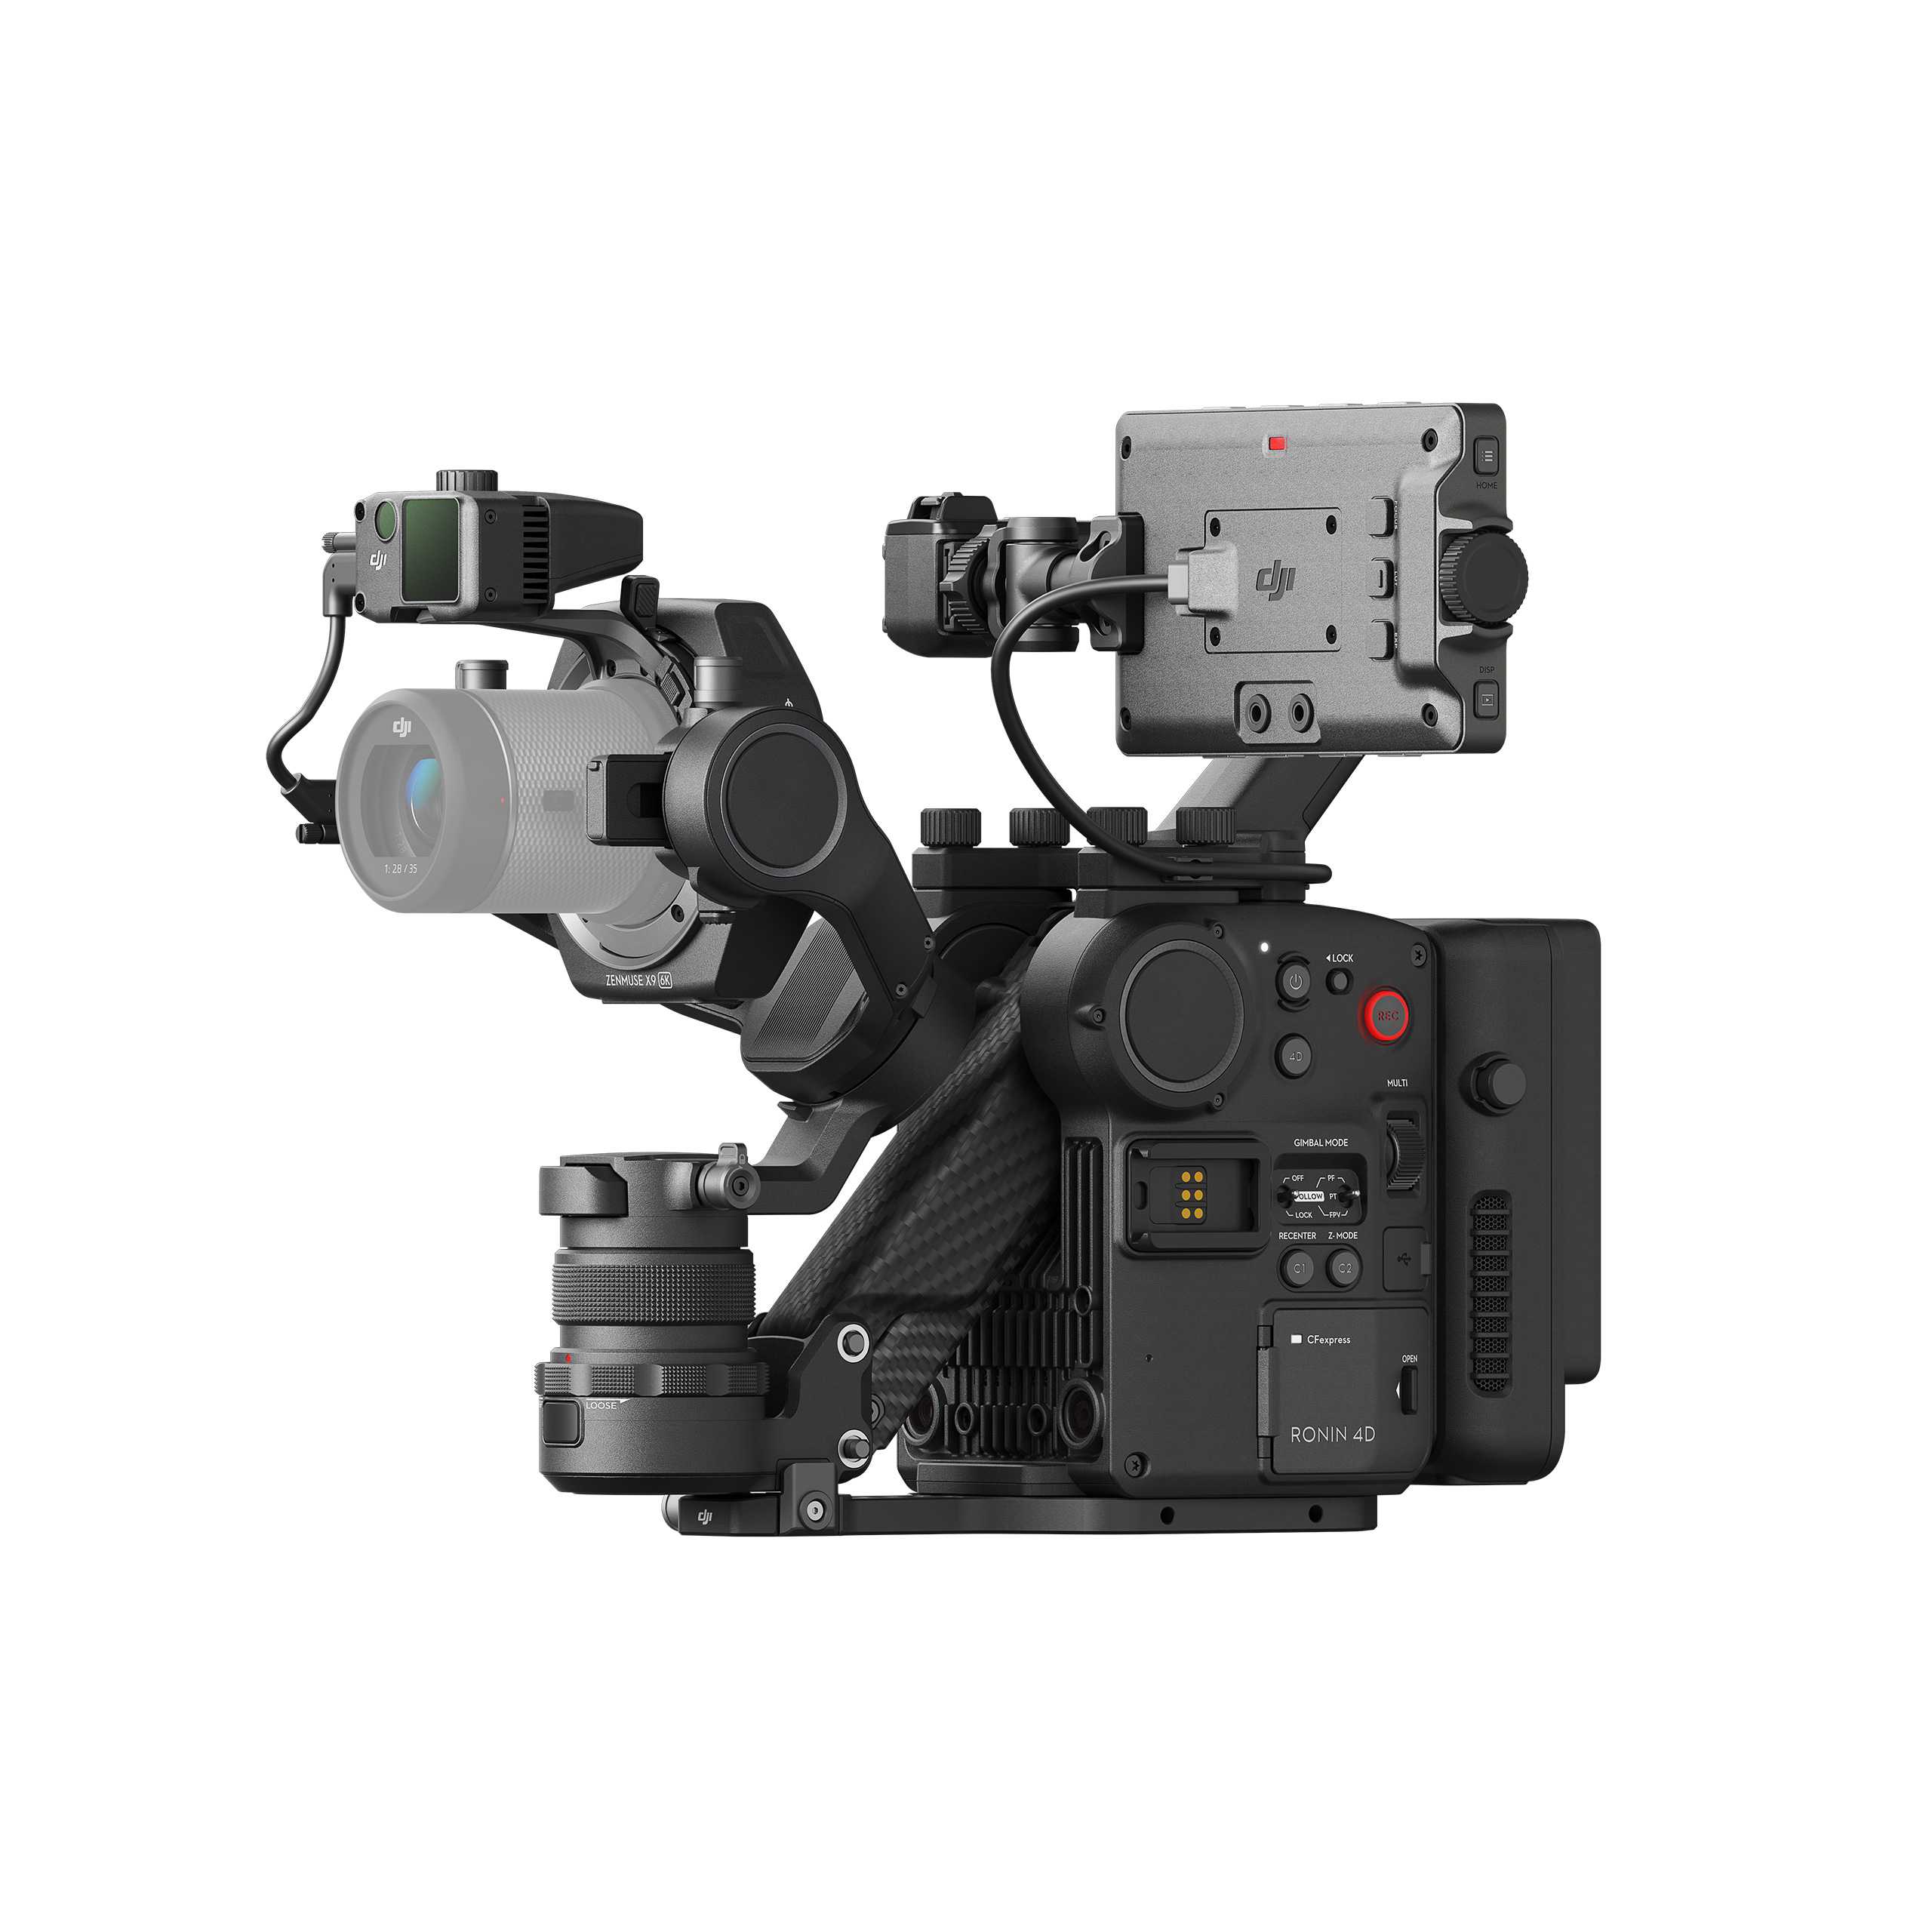 DJI RONIN 4D Cinema Camera with a Built in Gimbal: Hands On